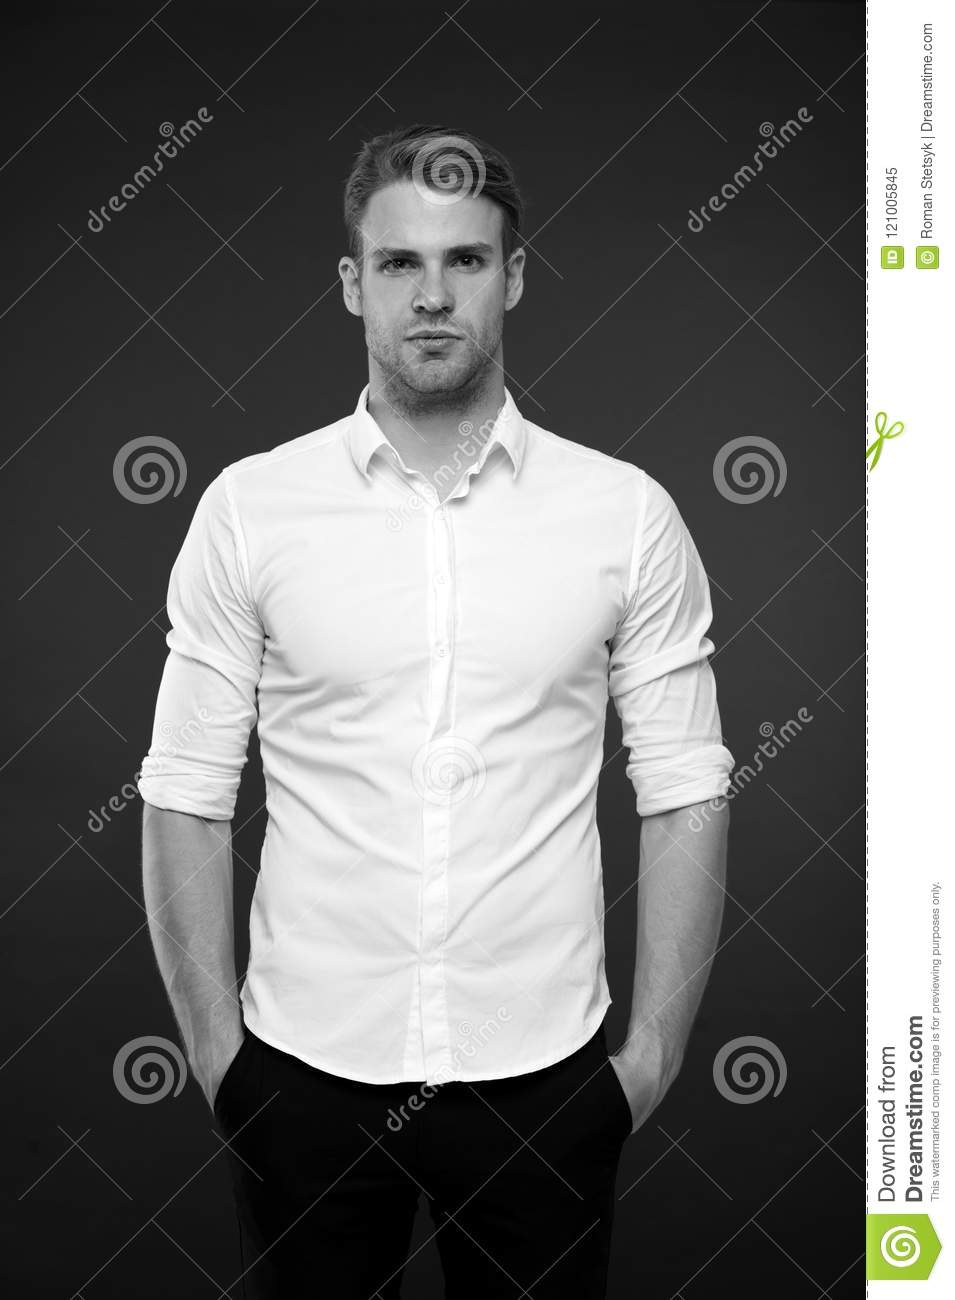 Body language hands in pockets when standing